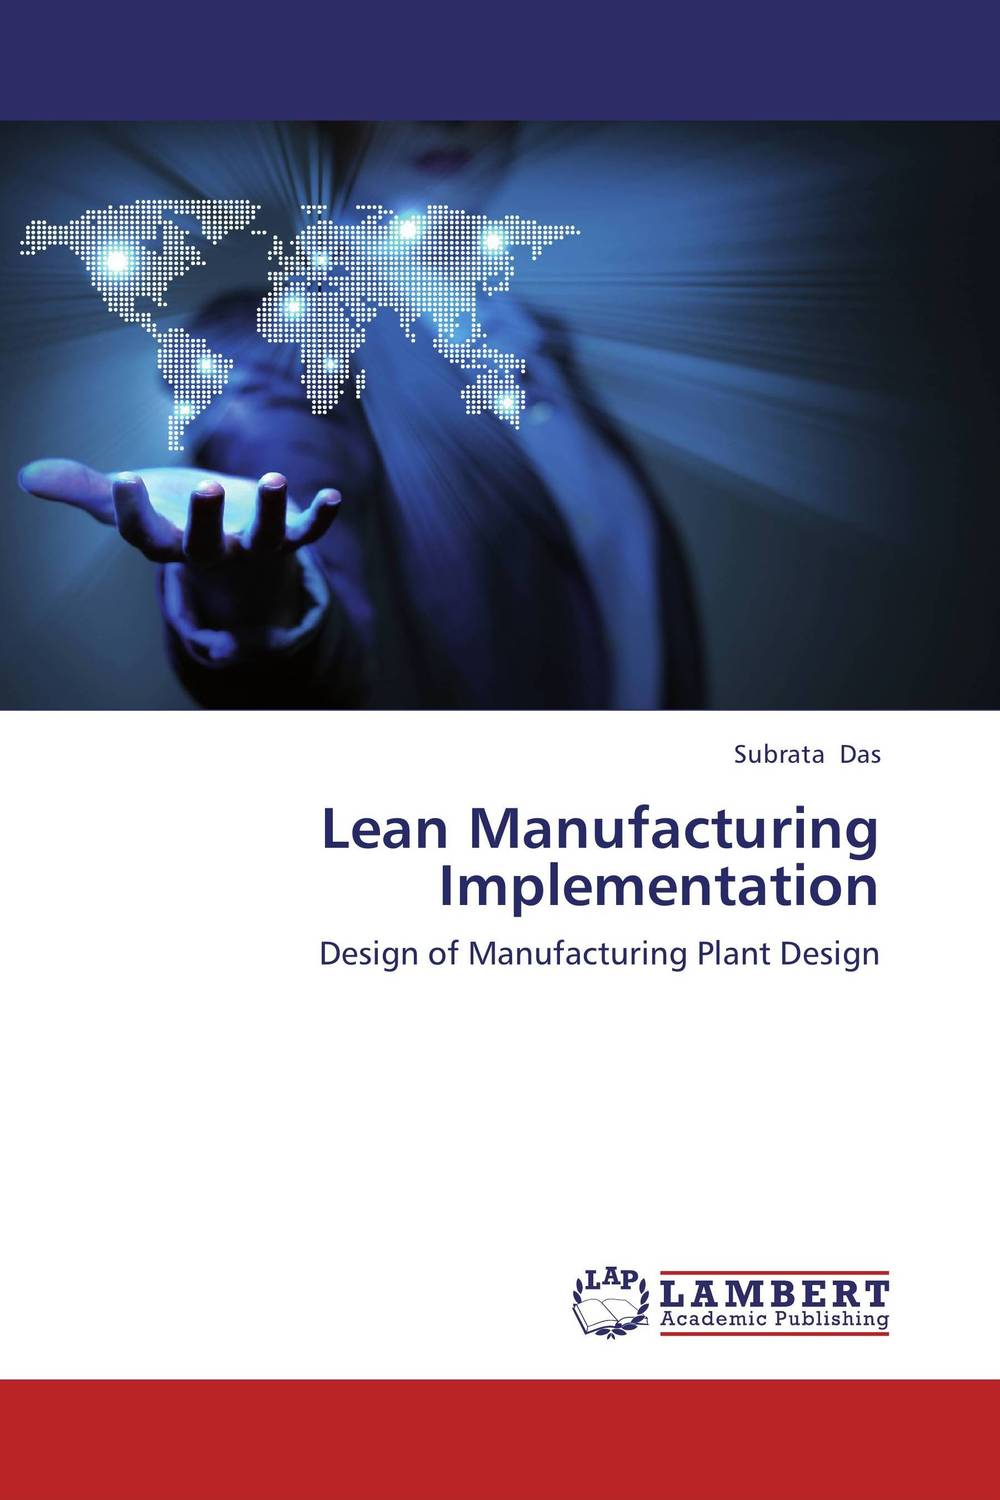 Lean Manufacturing Implementation менажница porcelain manufacturing factory 388 097